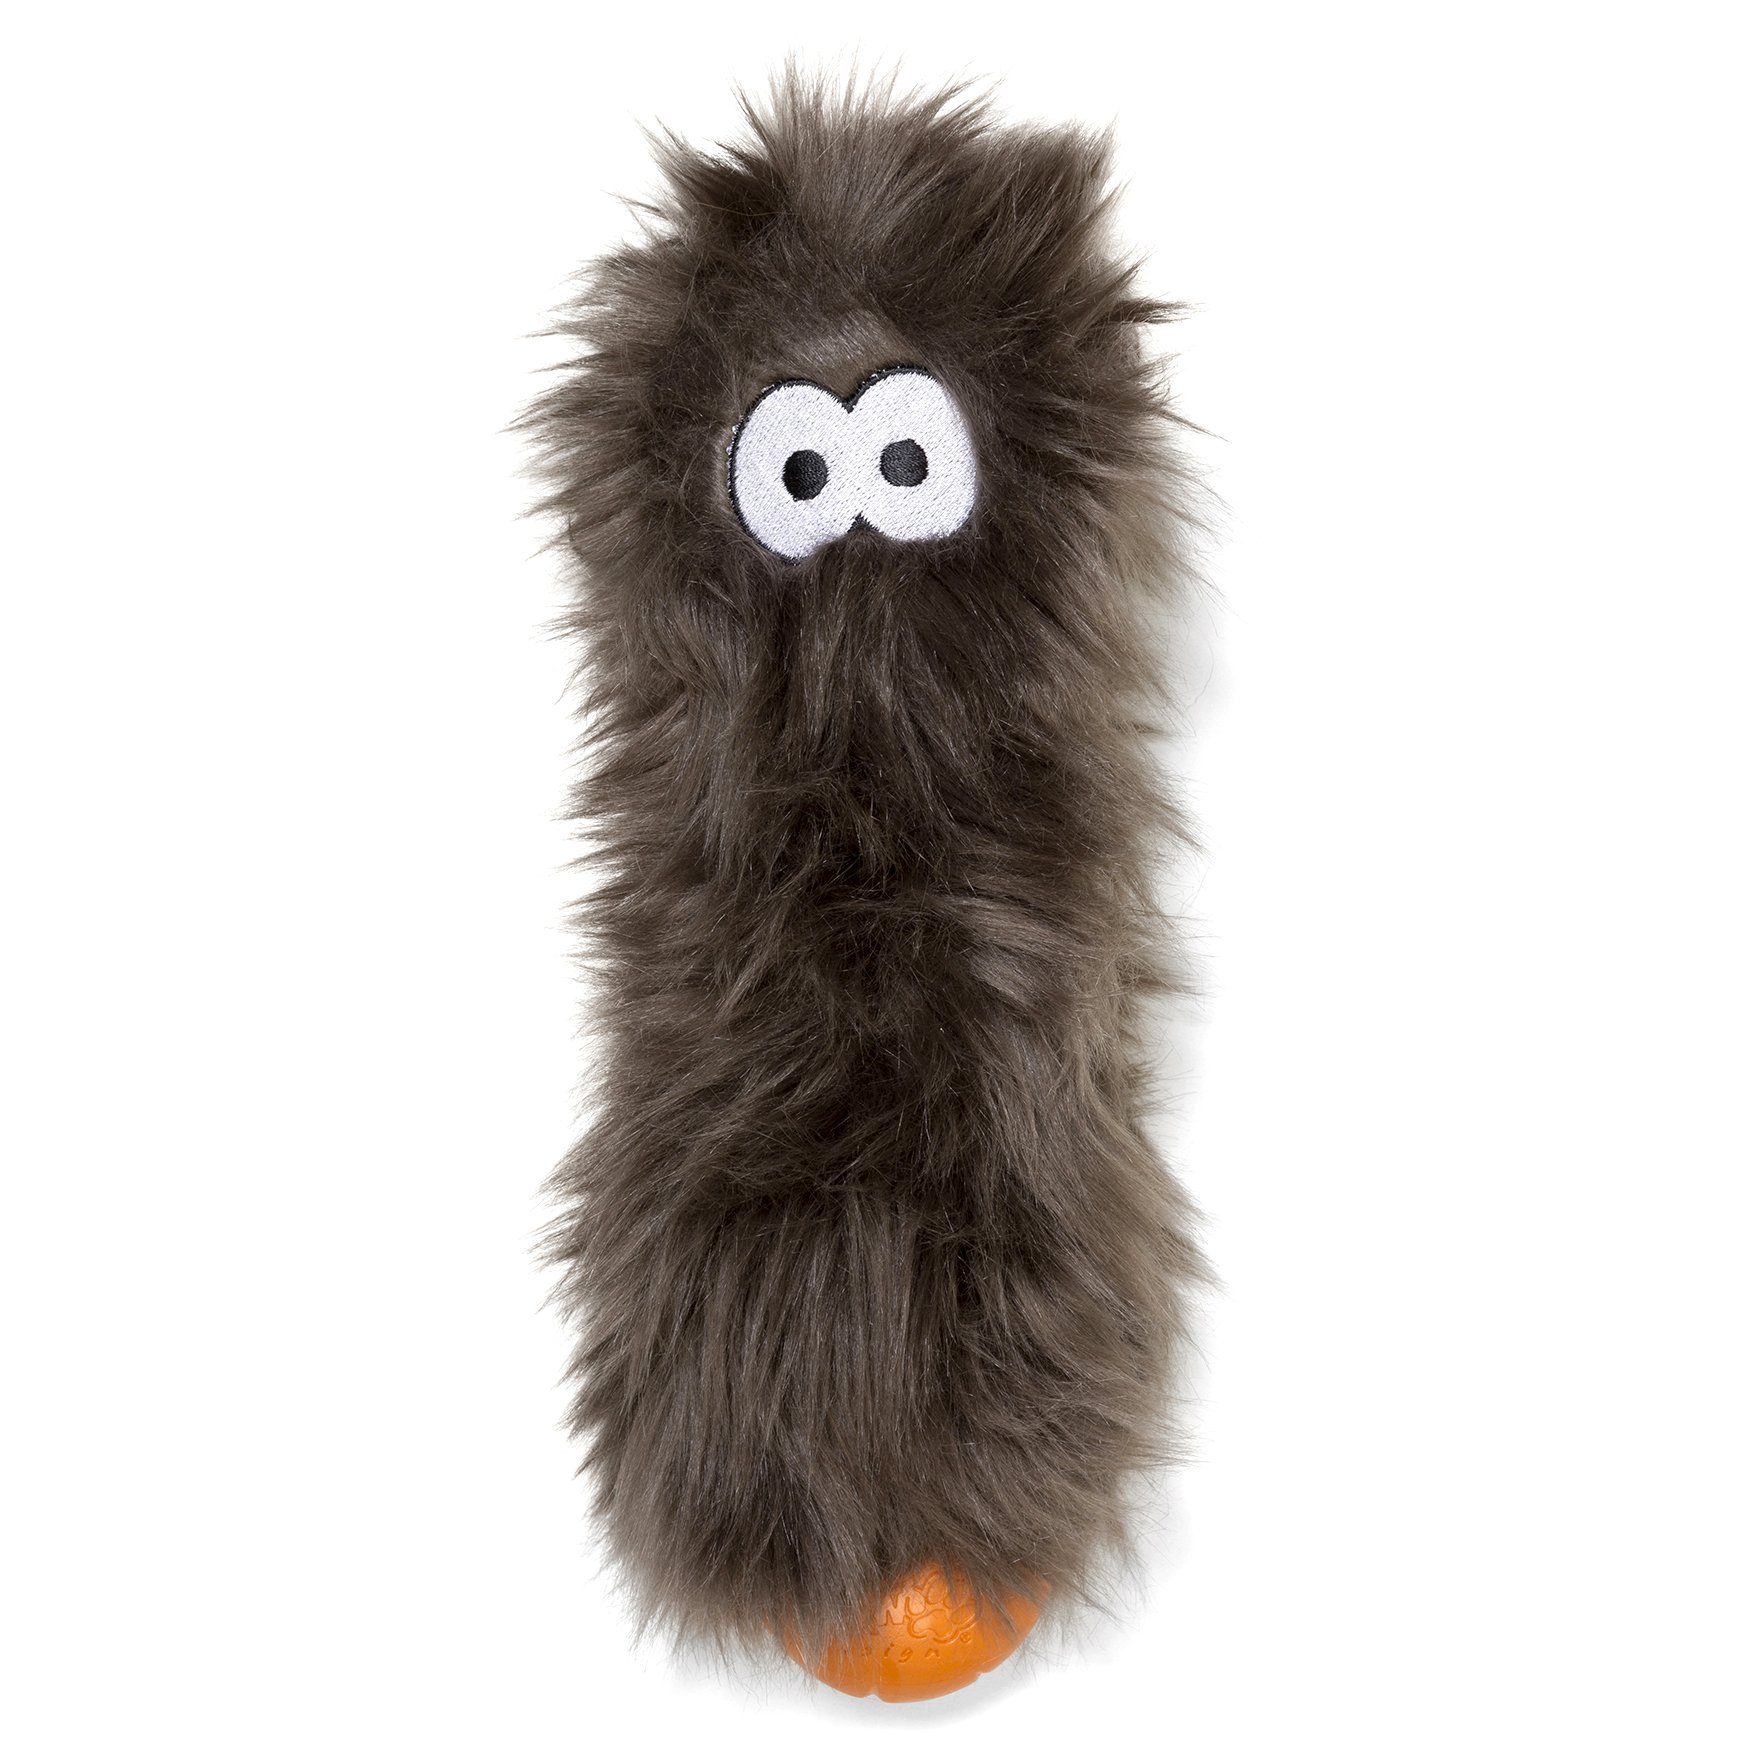 West Paw Rowdies with HardyTex and Zogoflex, Durable Plush Dog Toy for Small to Medium Dogs, Custer, Pewter Fur